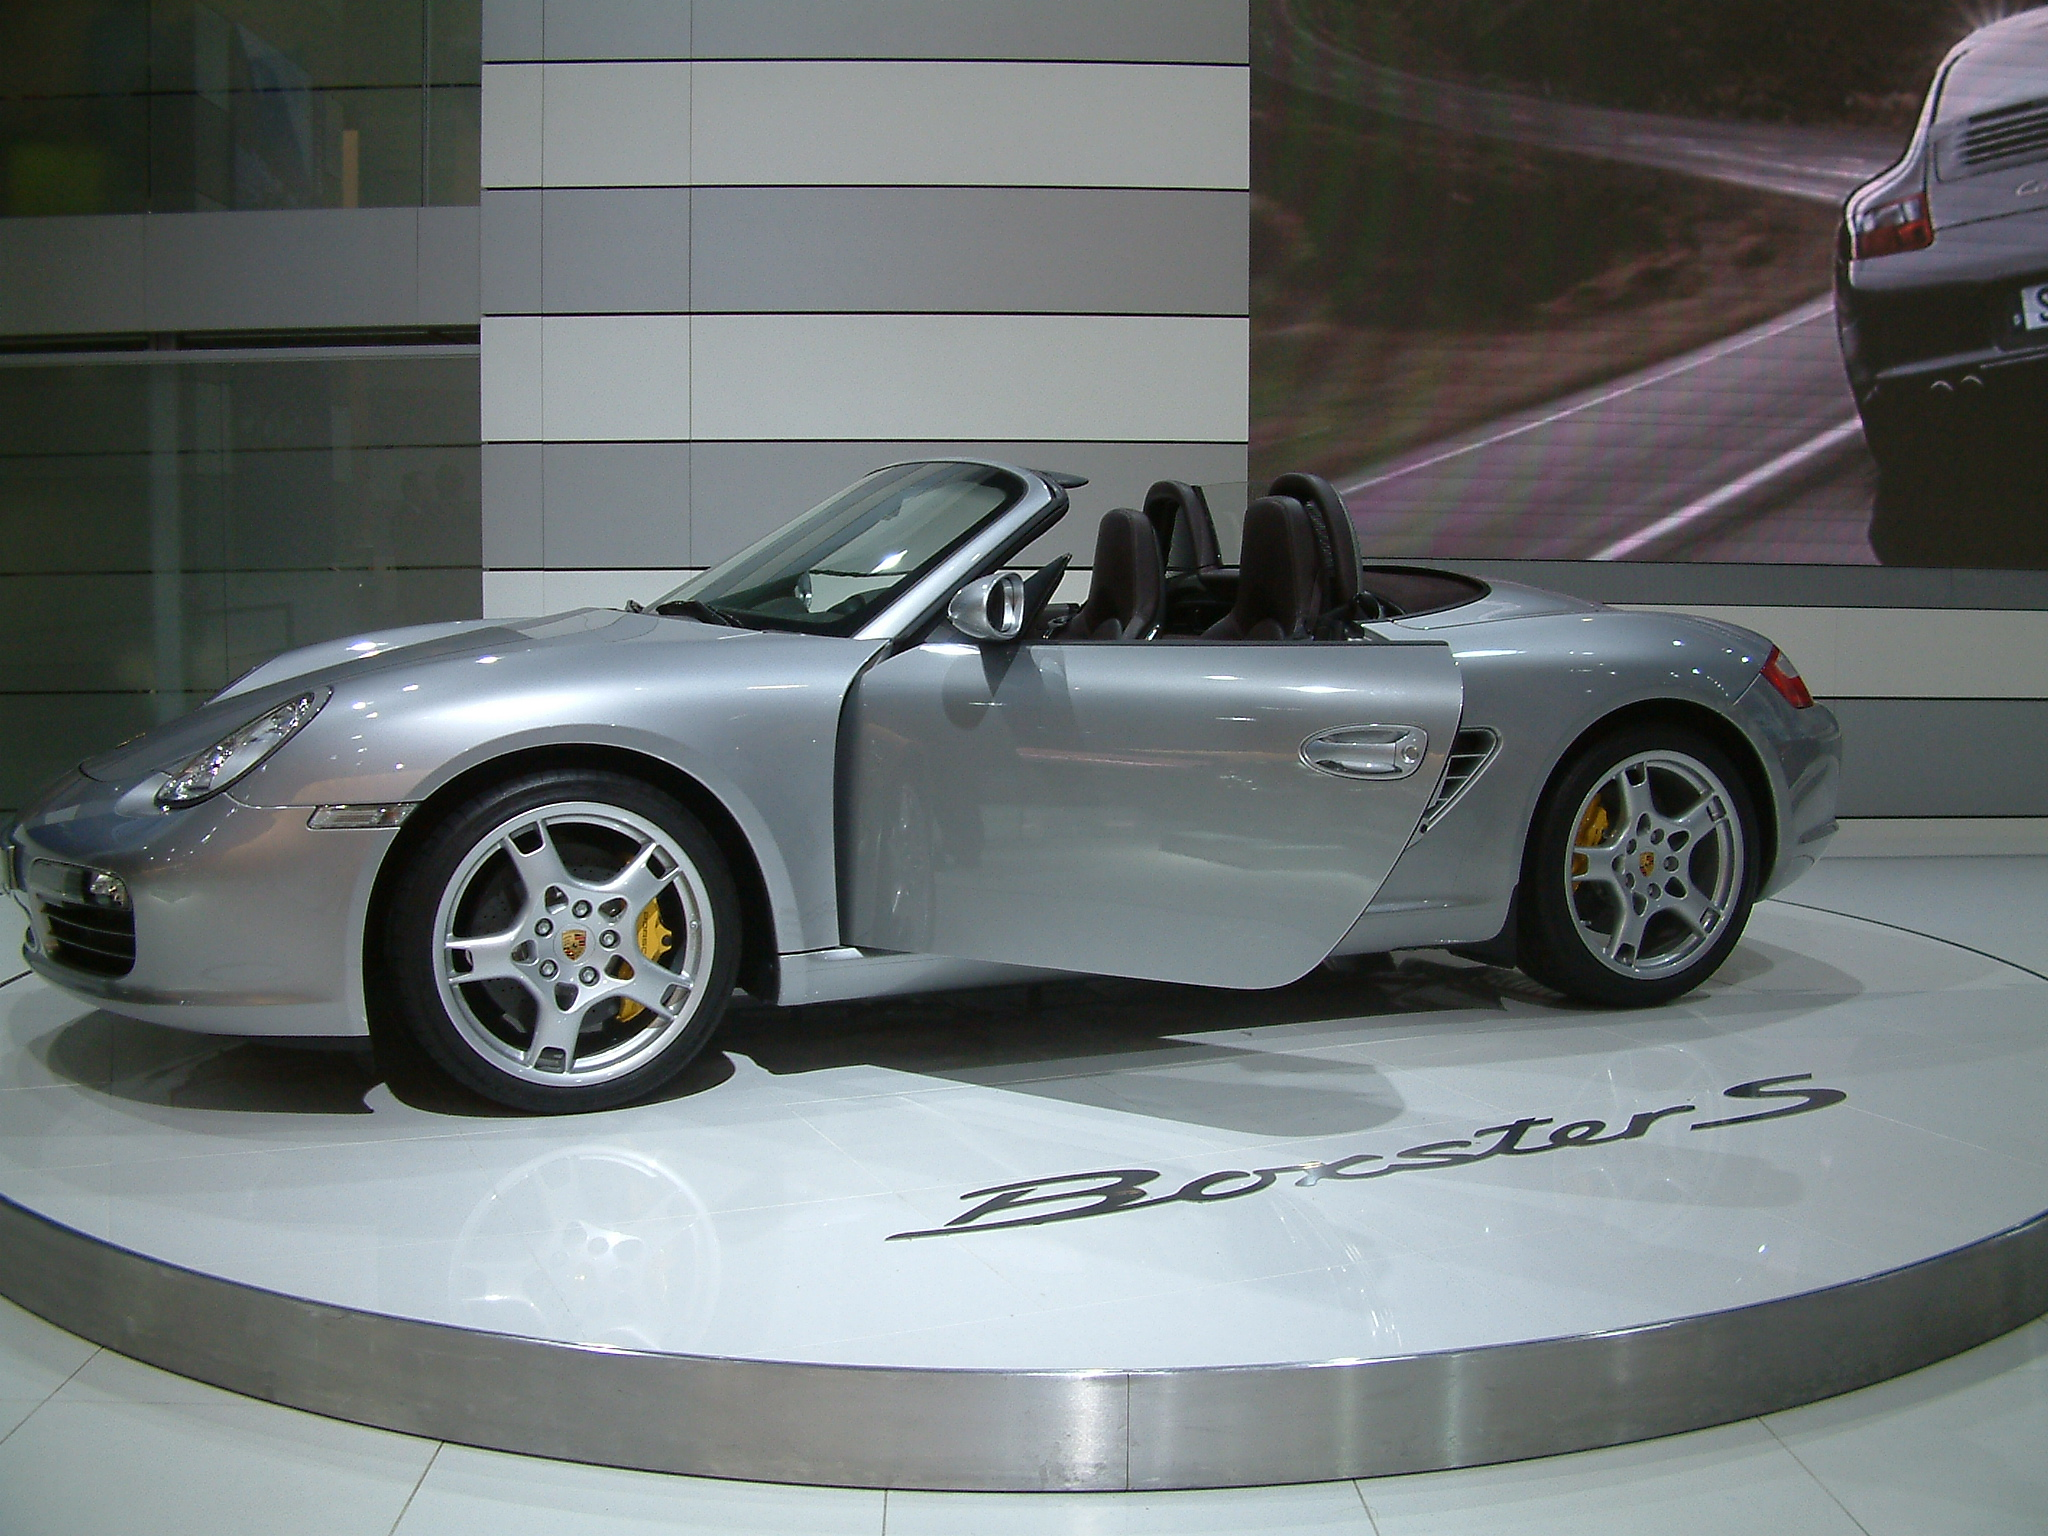 file 2004 silver porsche boxster s type. Black Bedroom Furniture Sets. Home Design Ideas